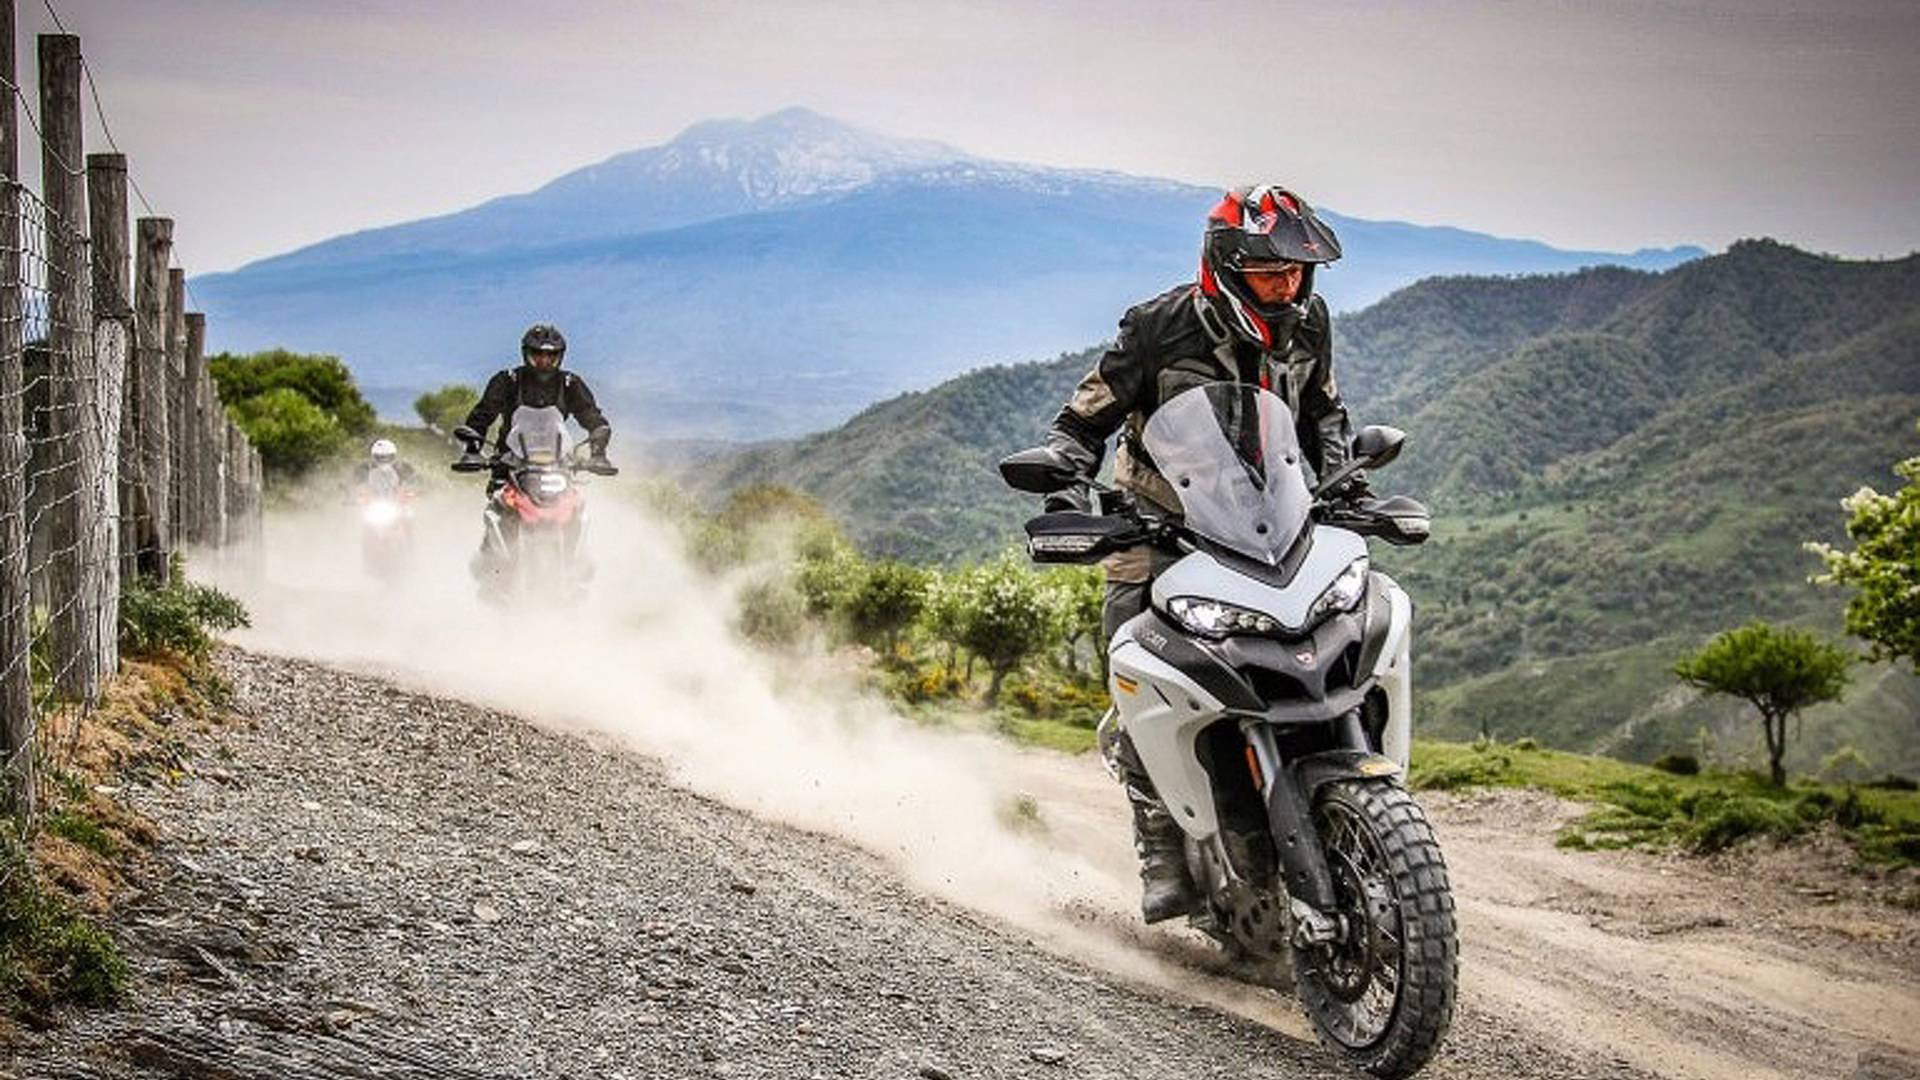 ADV and MX Bikes at Forefront of Future Moto Market Growth